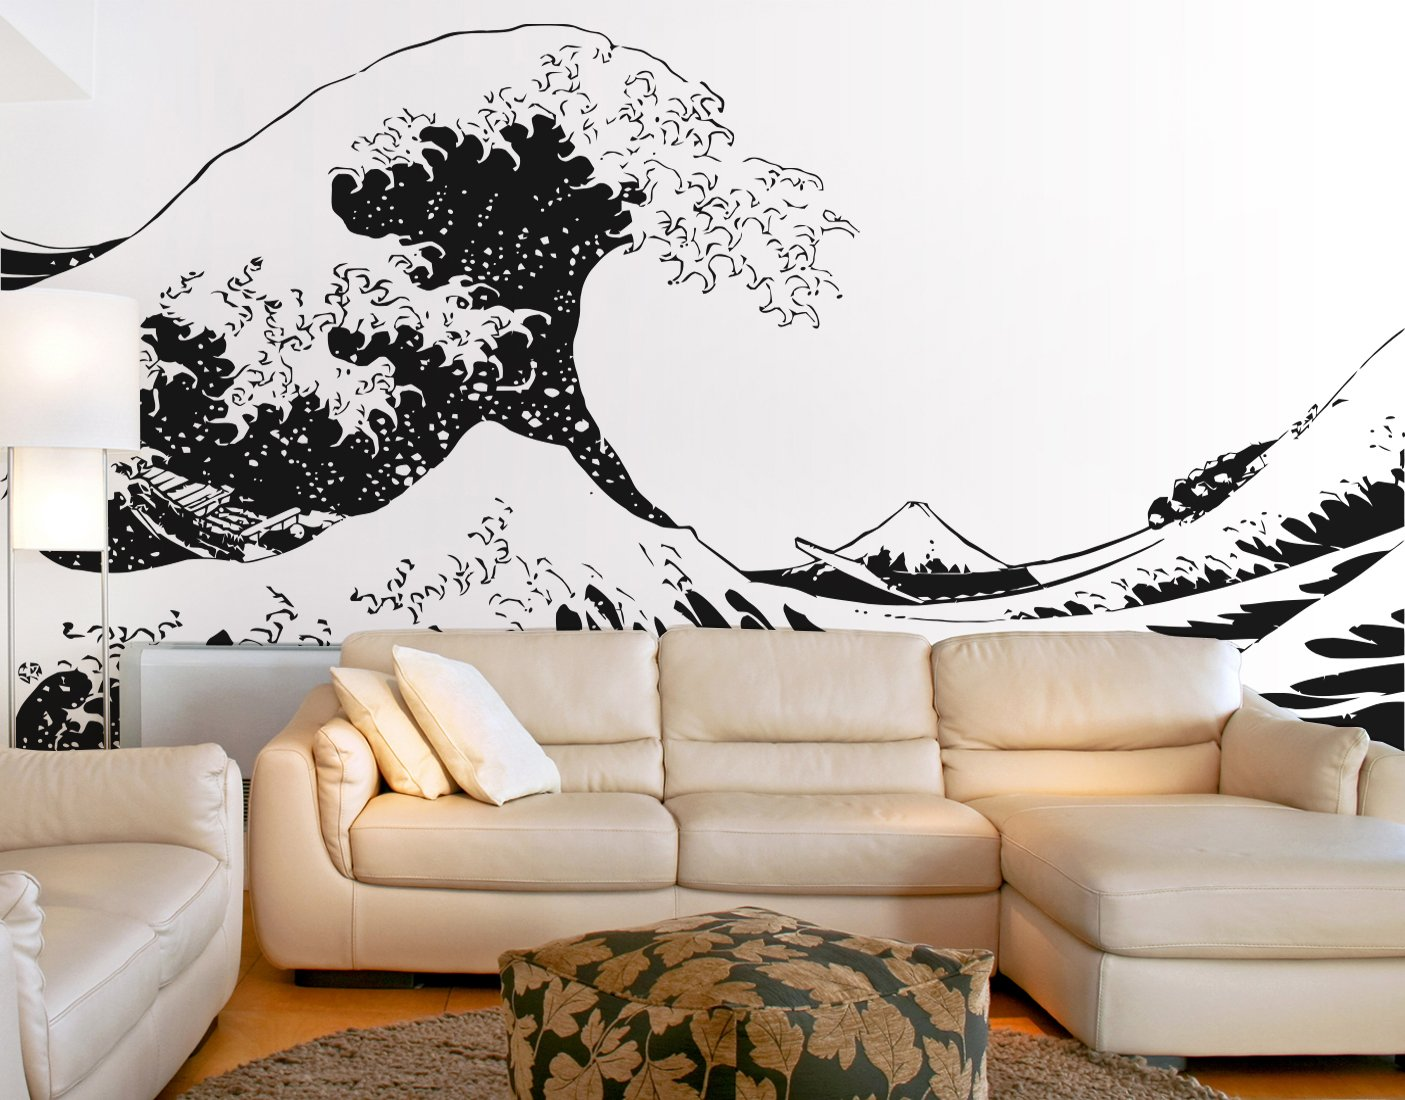 Japanese Hokusai Great Wave Wall Decal Sticker by Stickerbrand (Black color) 96in X 151in. - Easy to Apply / Removable. Made in the USA. No Glue Needed. Safer than wallpaper. Black color #363-96x151 by Stickerbrand